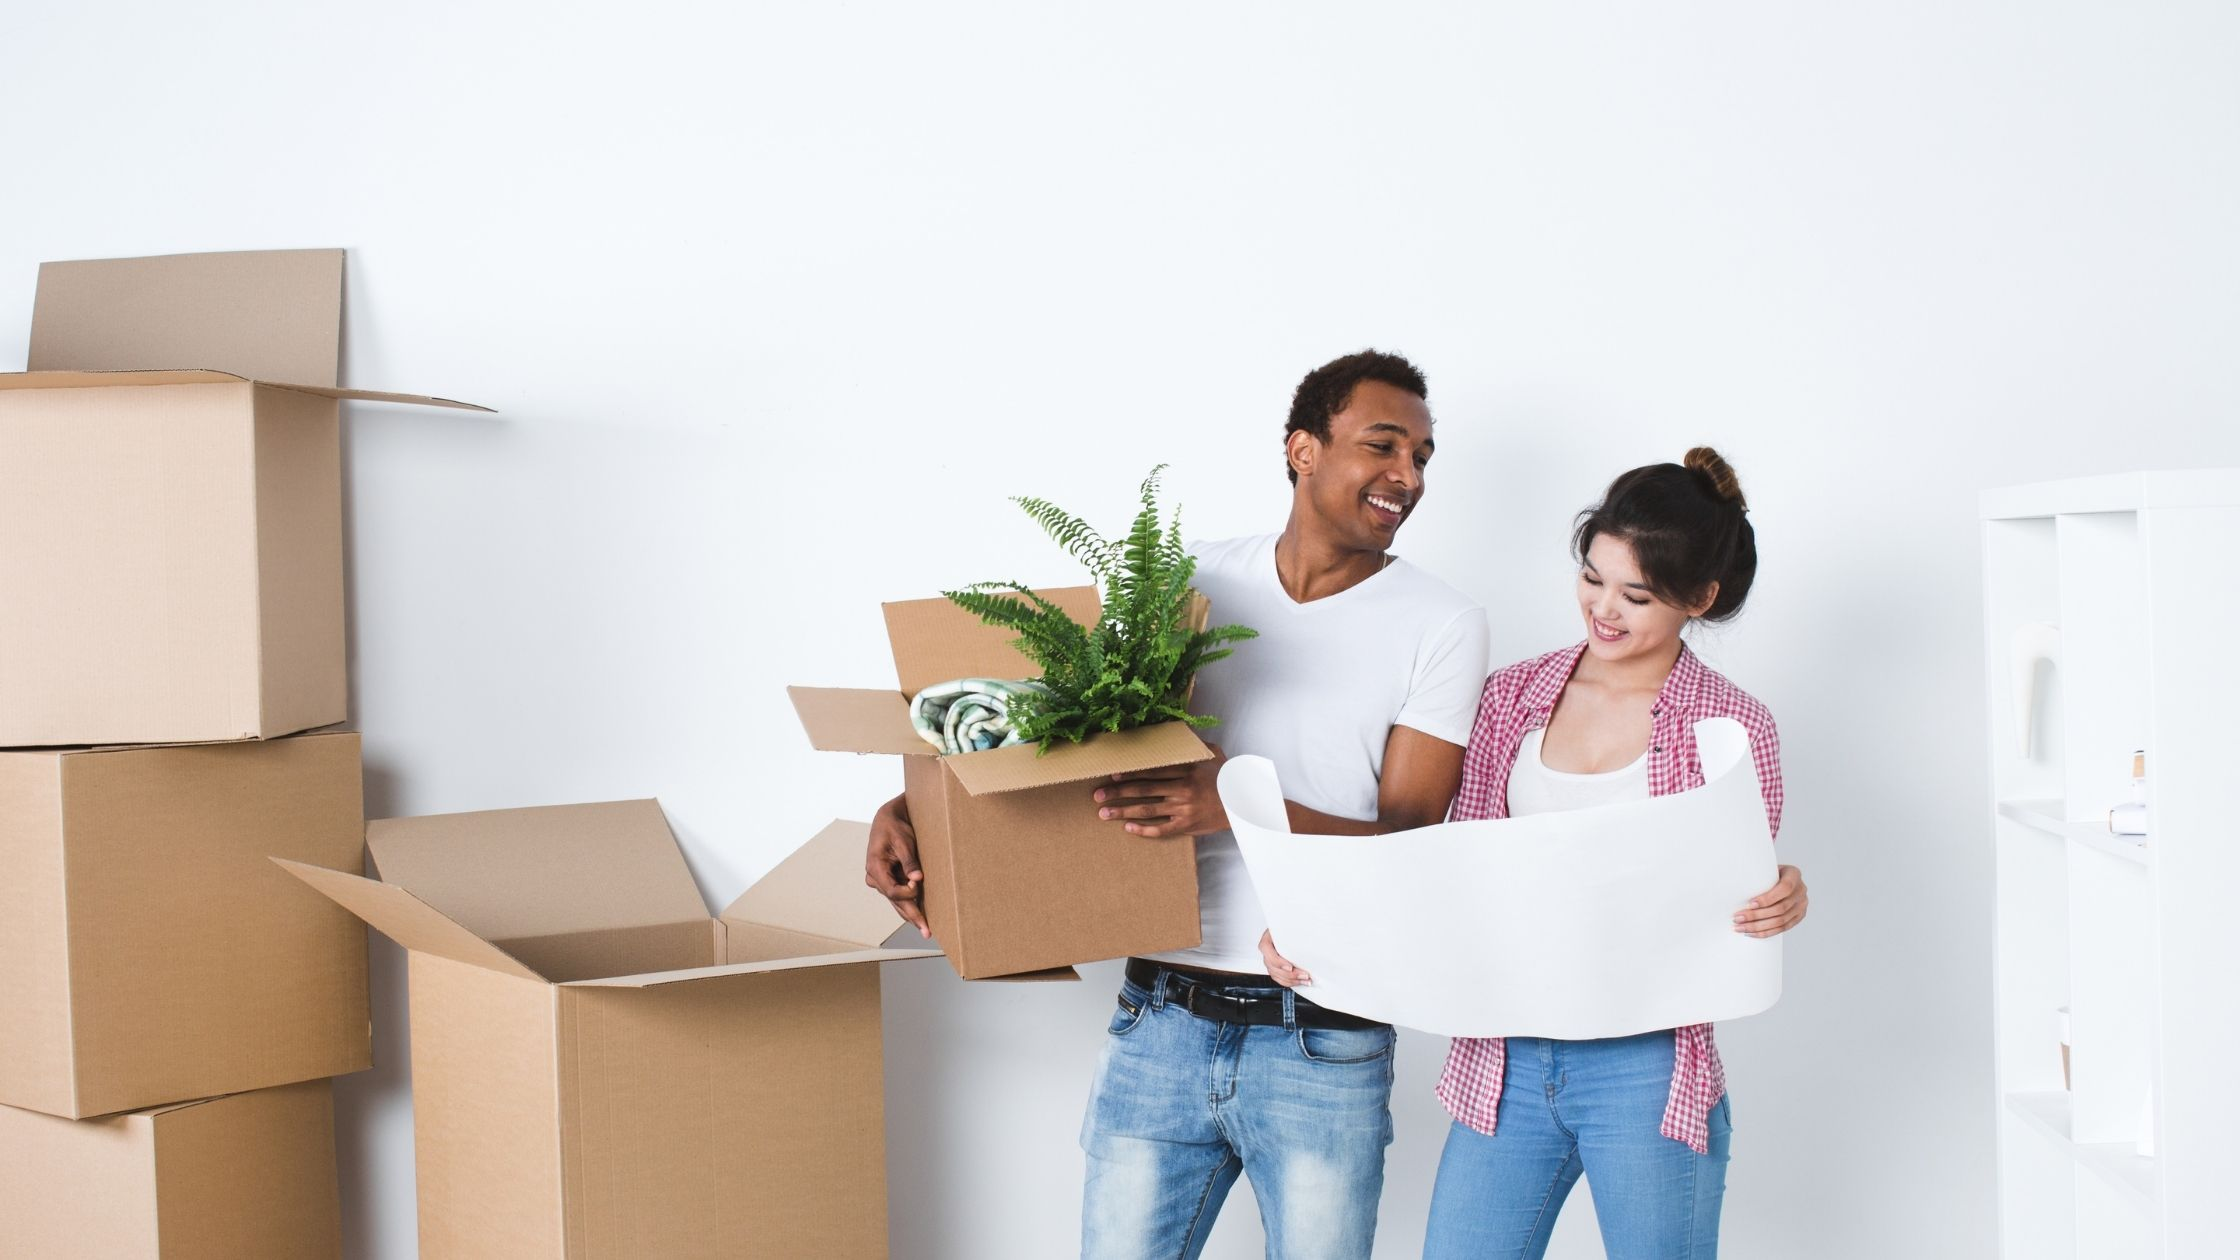 The search for your dream home